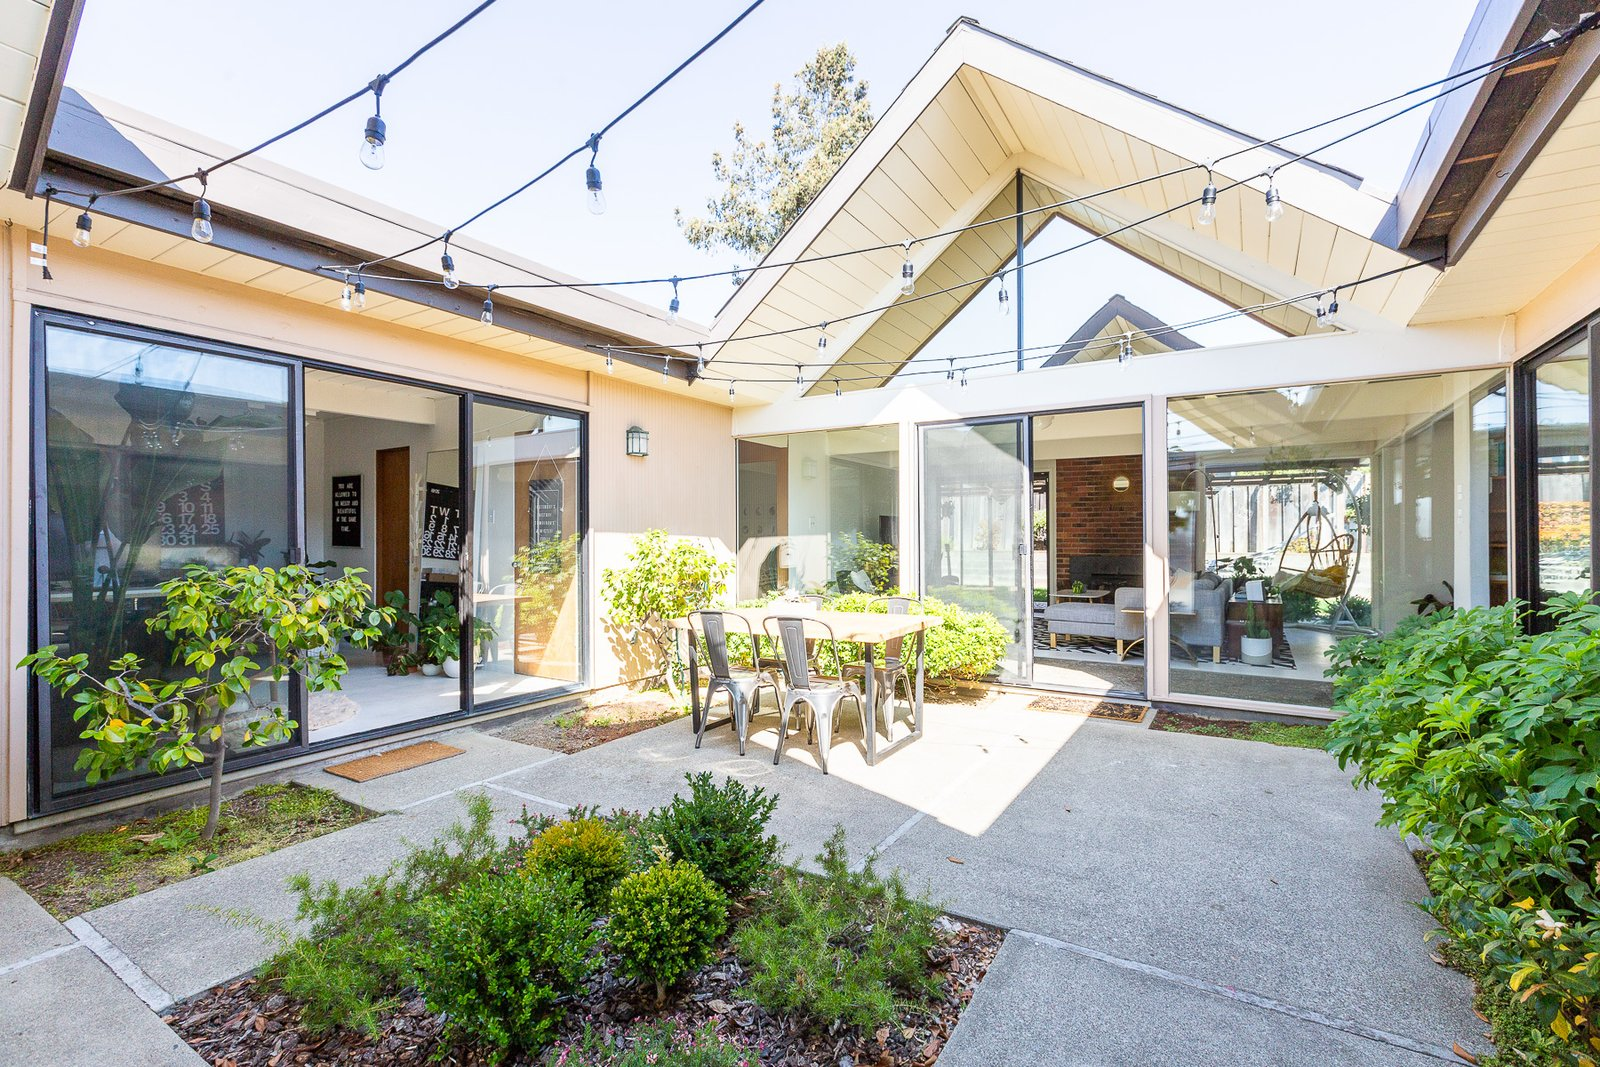 Outdoor, Trees, Concrete Patio, Porch, Deck, Shrubs, Hanging Lighting, and Small Patio, Porch, Deck The atrium, one of the main distinguishing features of Eichler homes, connects the two A-frames.  Photo 2 of 16 in Wellness Guru Joanne Encarnacion's Blissful A-Frame Eichler